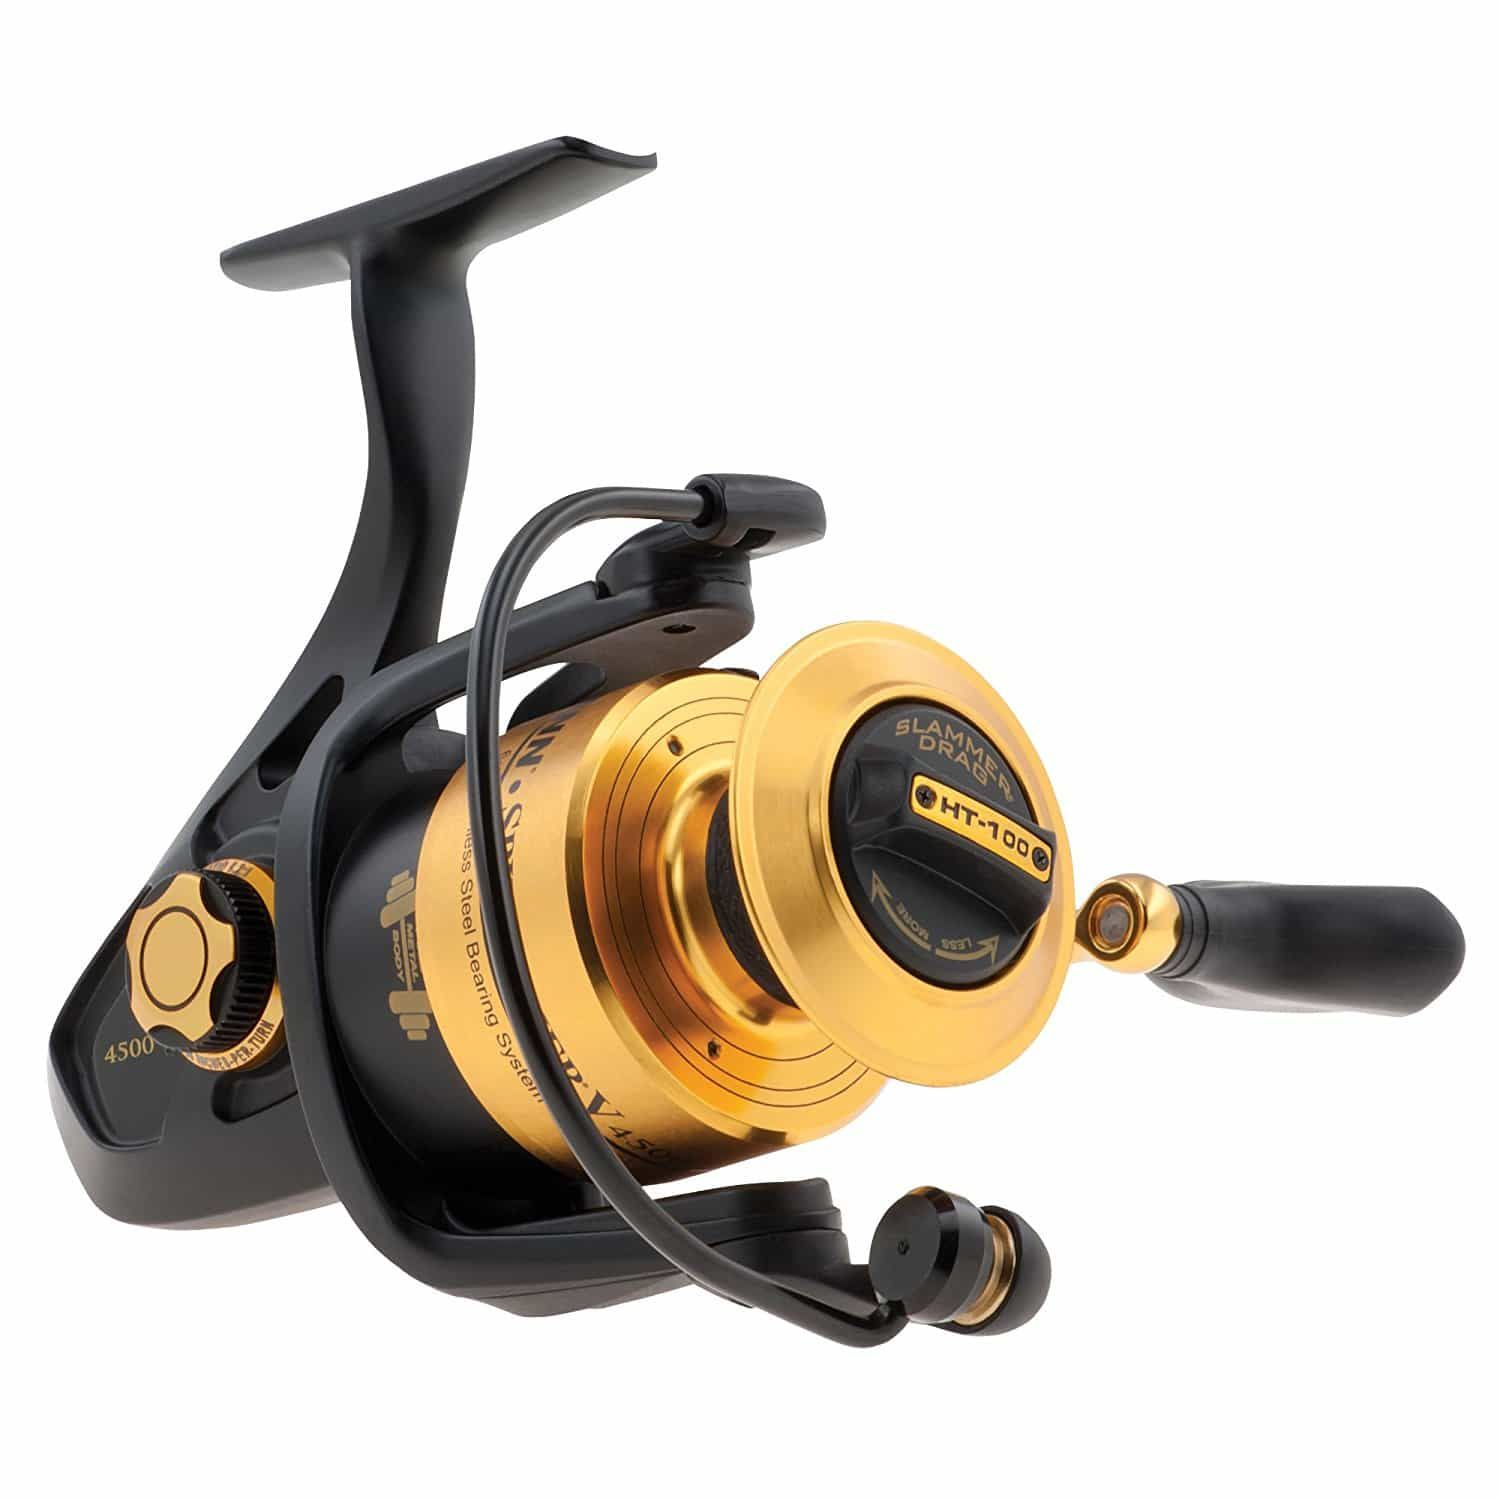 Top 10 Best Spinning Reels In 2020 Reviews Purchasing Guide For Buyers Hqreview Fishing Spinning Reels Fishing Reels Spinning Reels